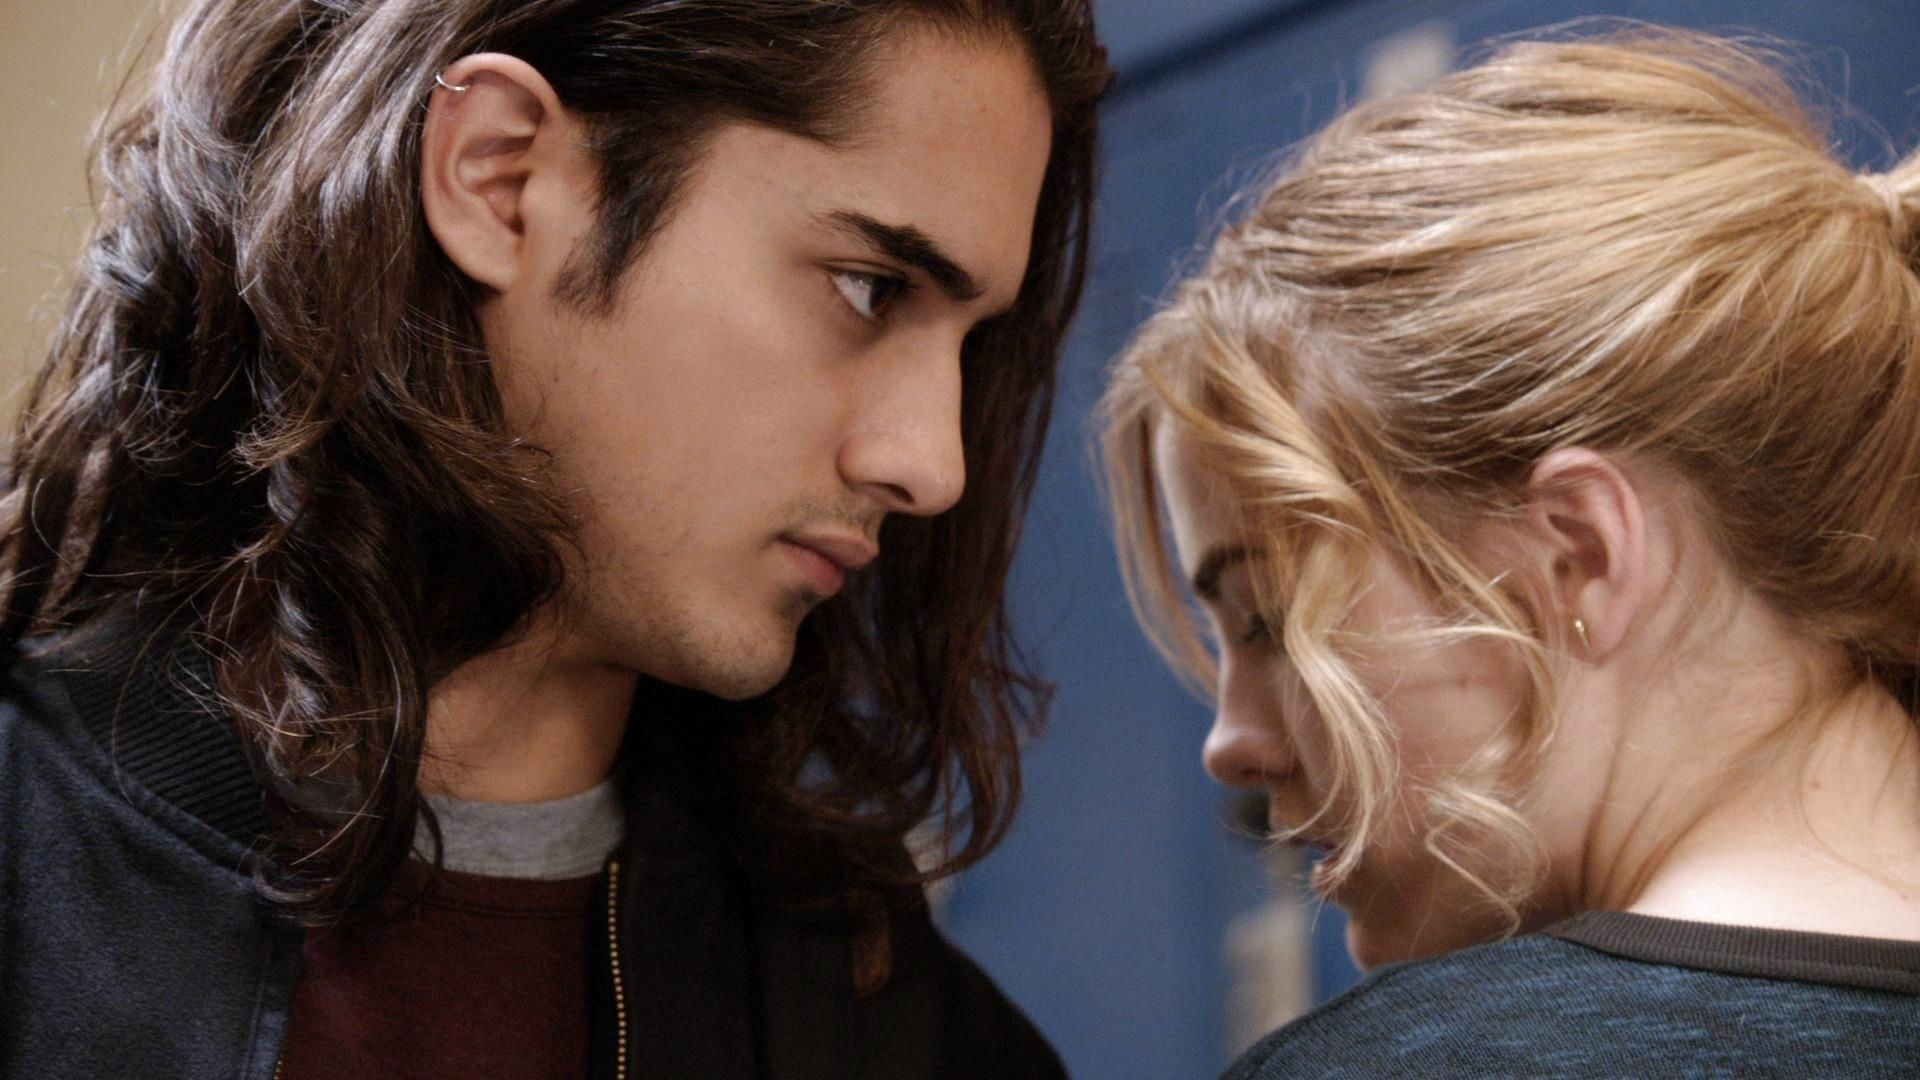 Twisted: Season 1 x Episode 12 - free to watch online - TMovies